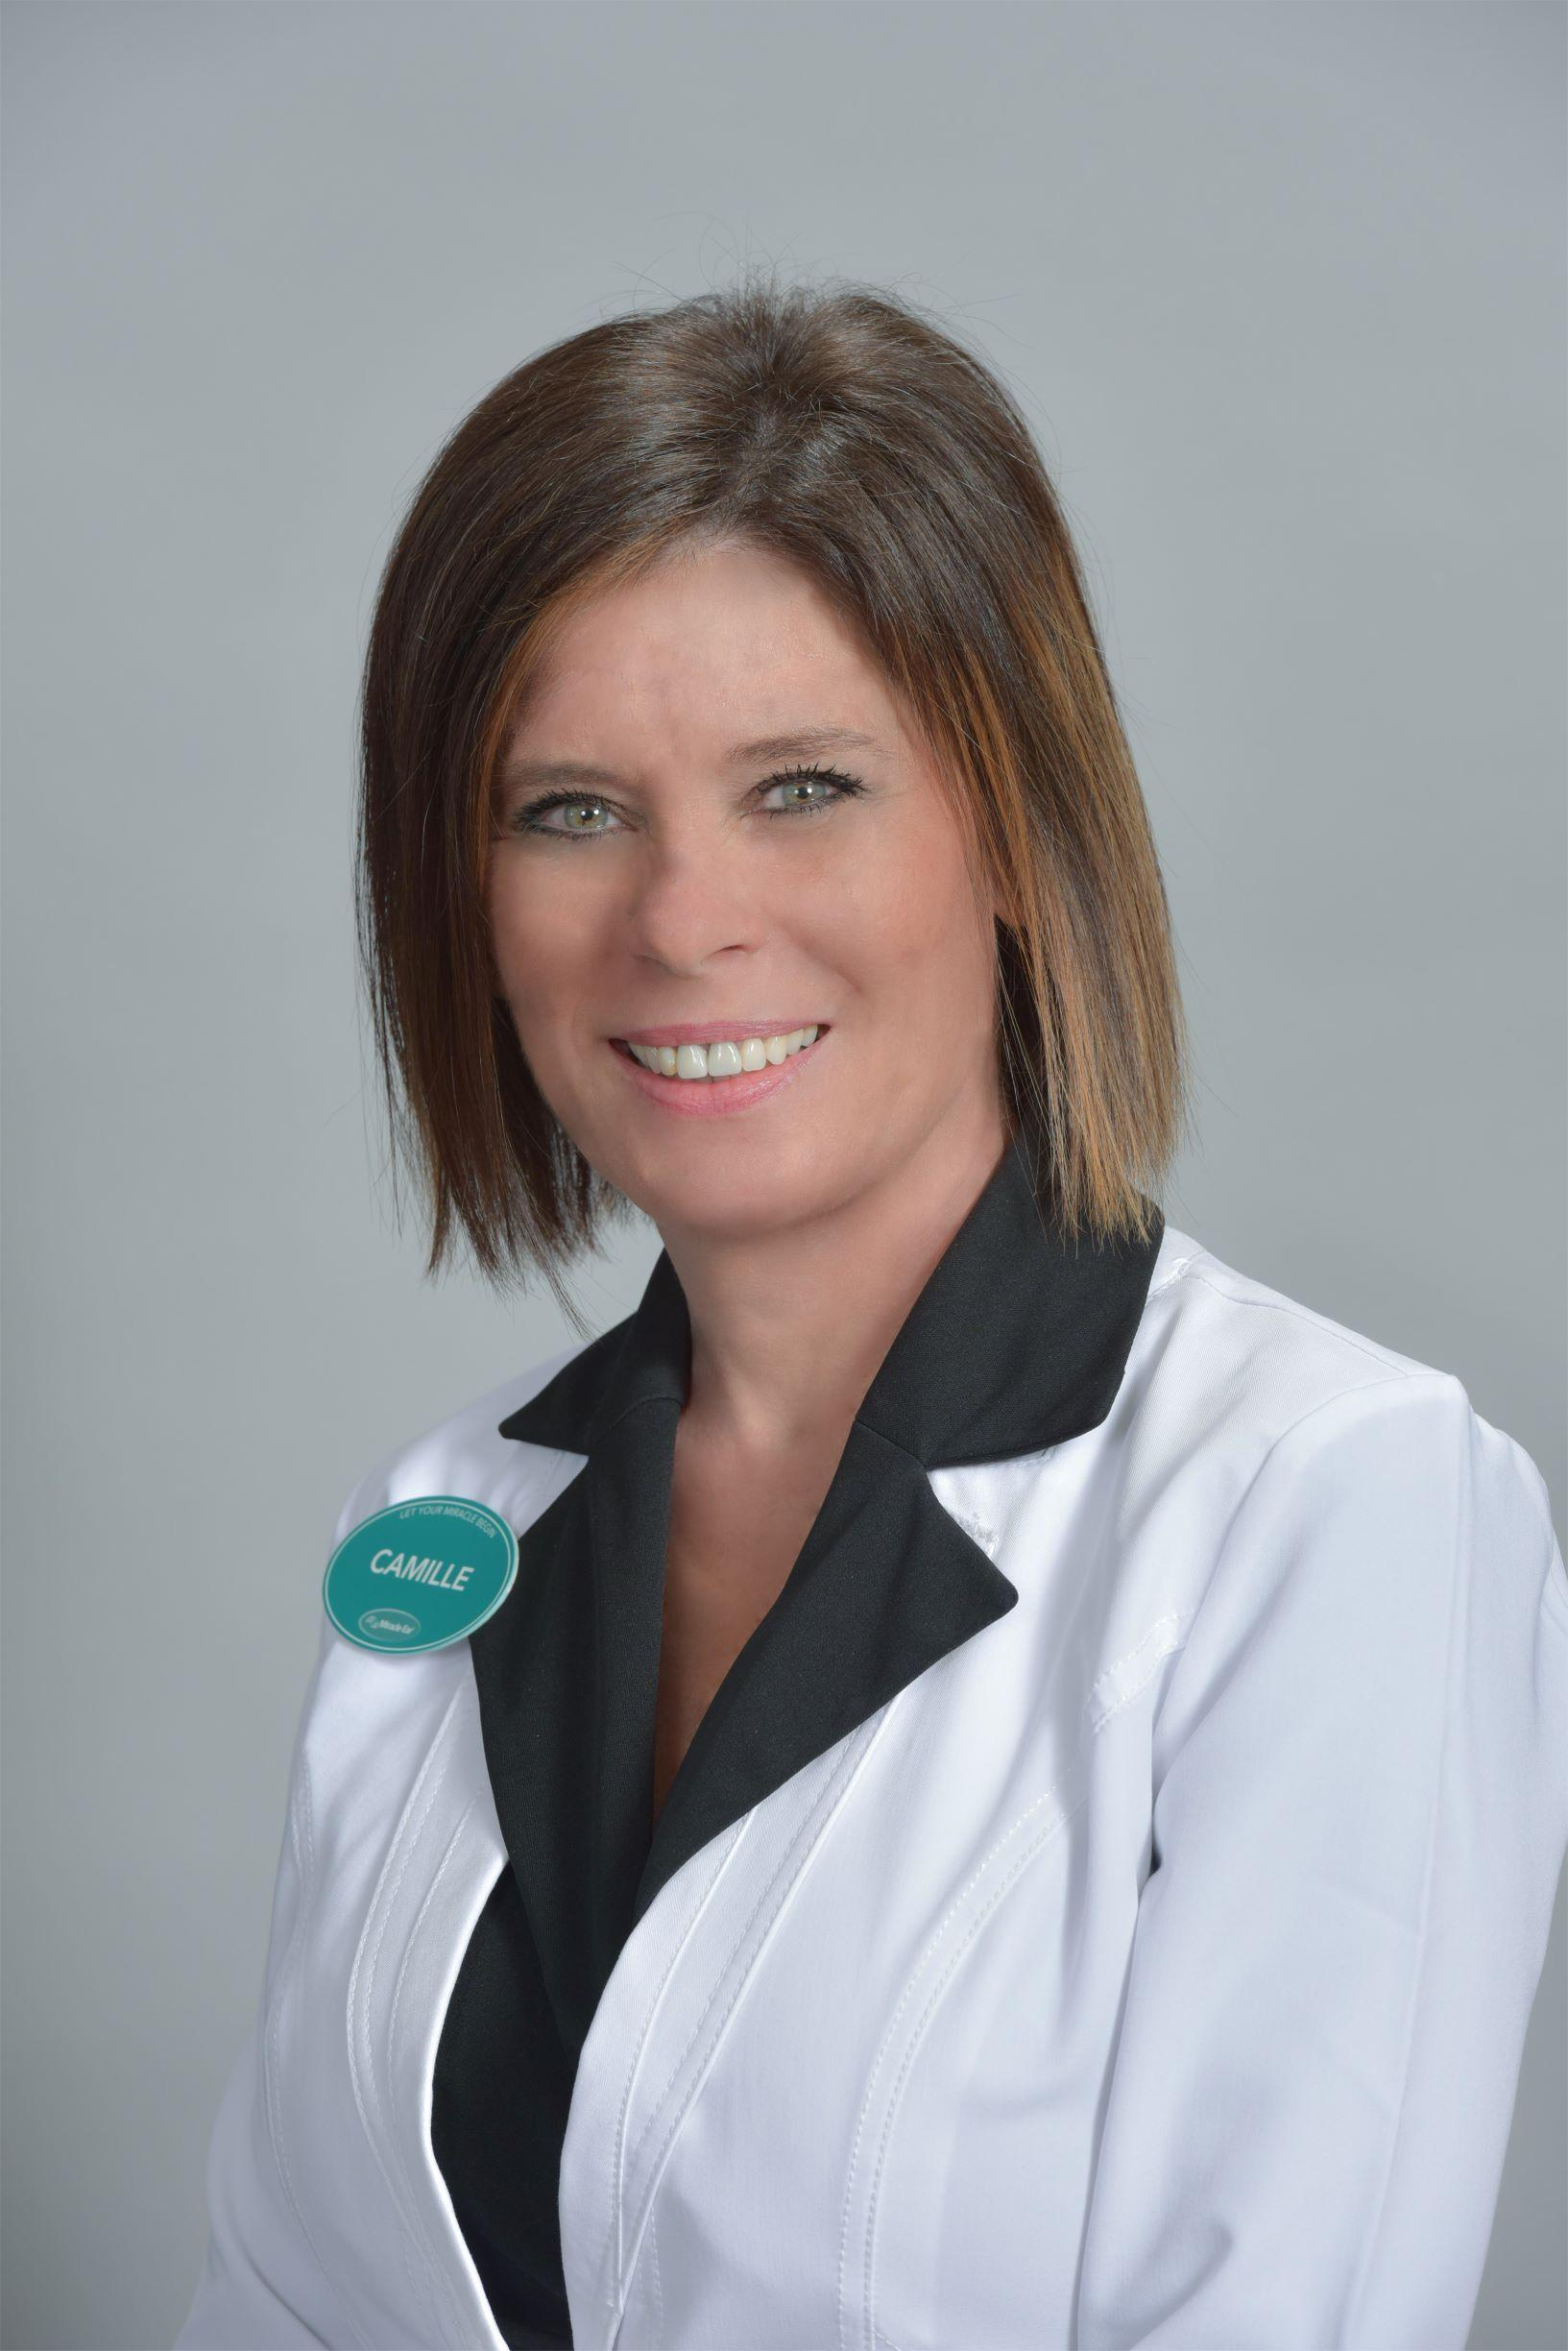 Profile Photo of Camille - Board Certified in Hearing Instrument Sciences